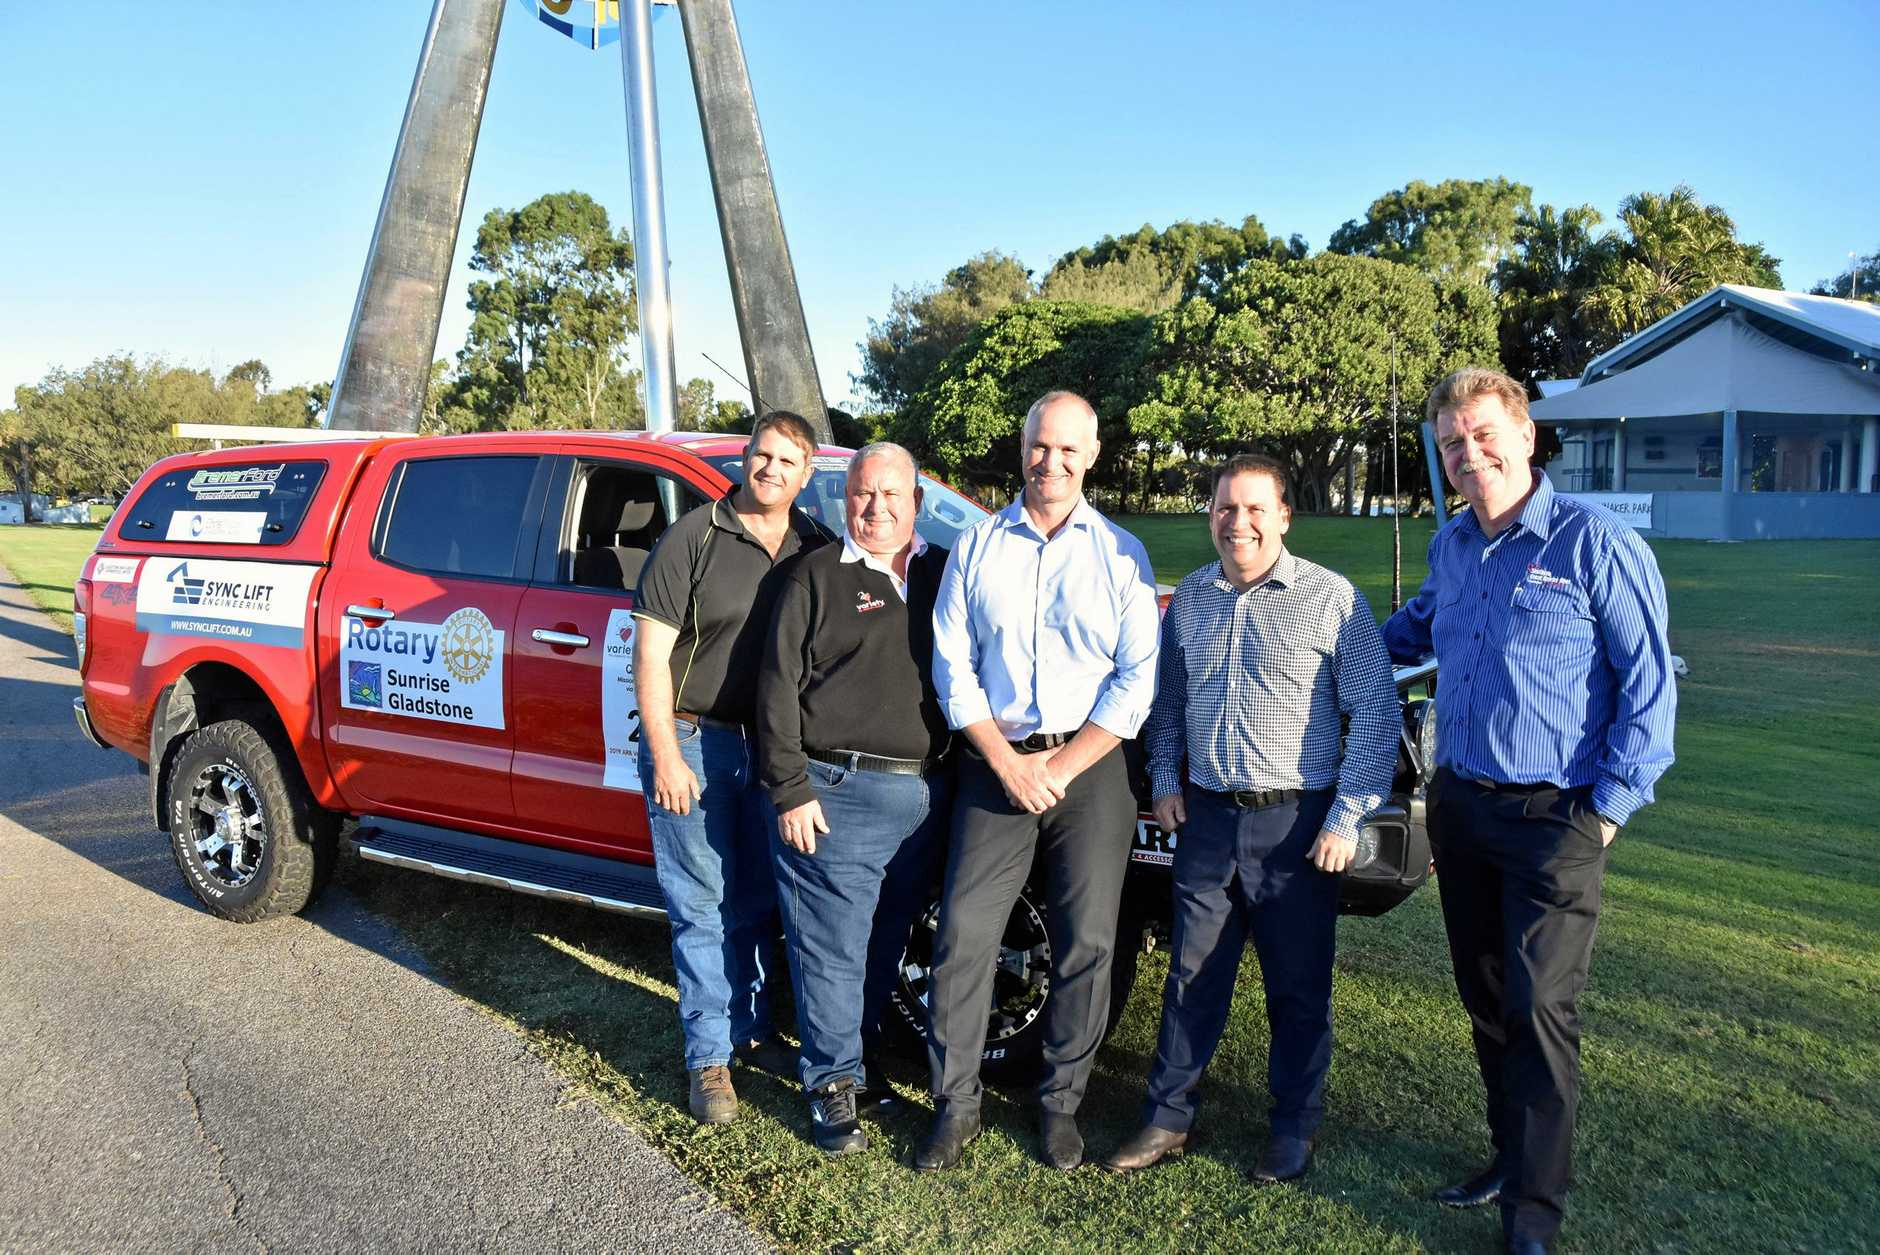 CASH FOR BASH: Kelvin Dennis of Dennis Contracting Services, Greg Klease, Gladstone MP Glenn Butcher, Mayor Matt Burnett and Darryl Branthwaite of GAPDL next to the Variety 4WD Car #27 ahead of the 2019 ARB Variety 4WD Adventure.